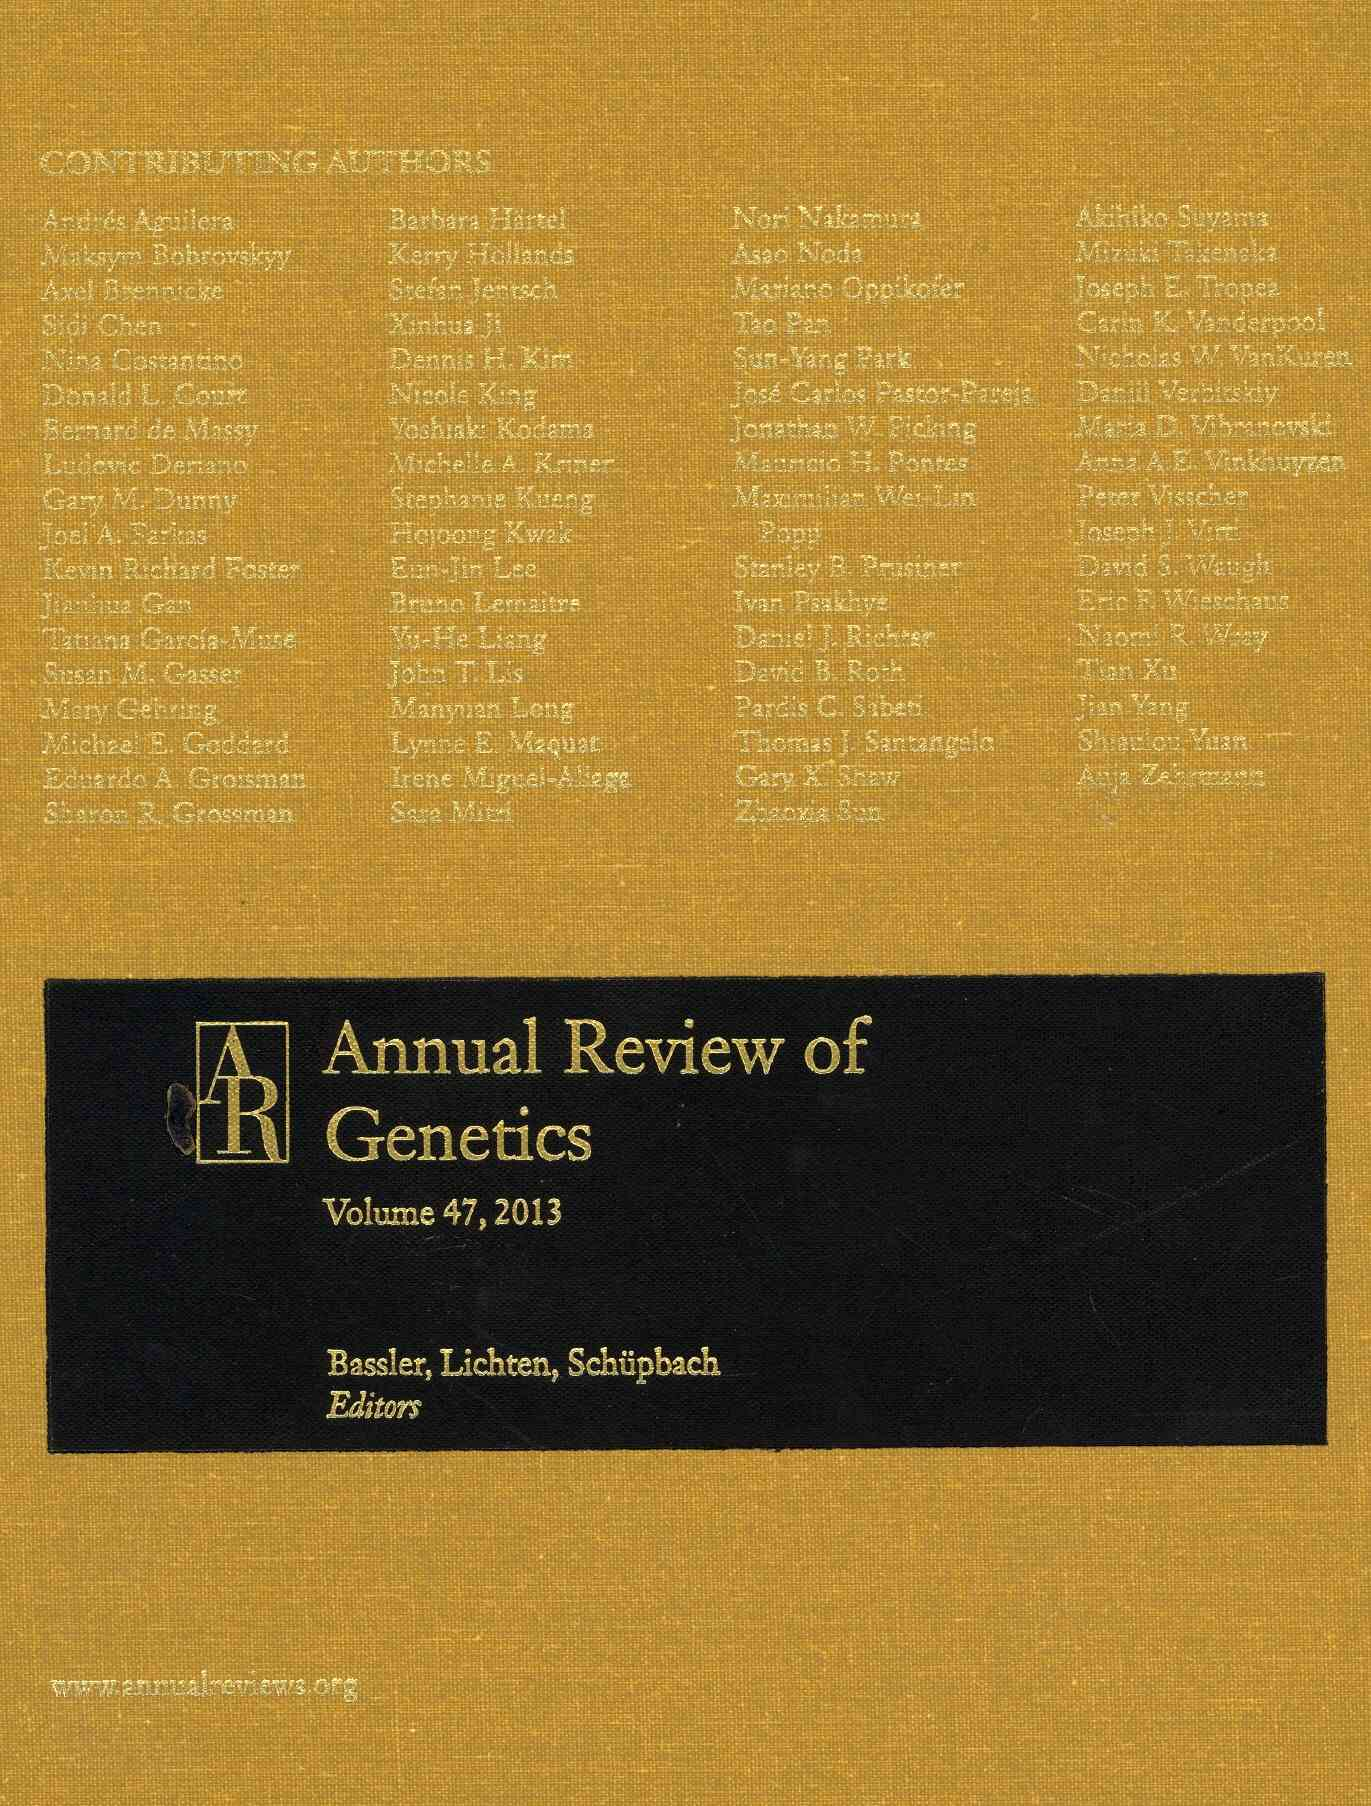 Annual Review of Genetics 2013